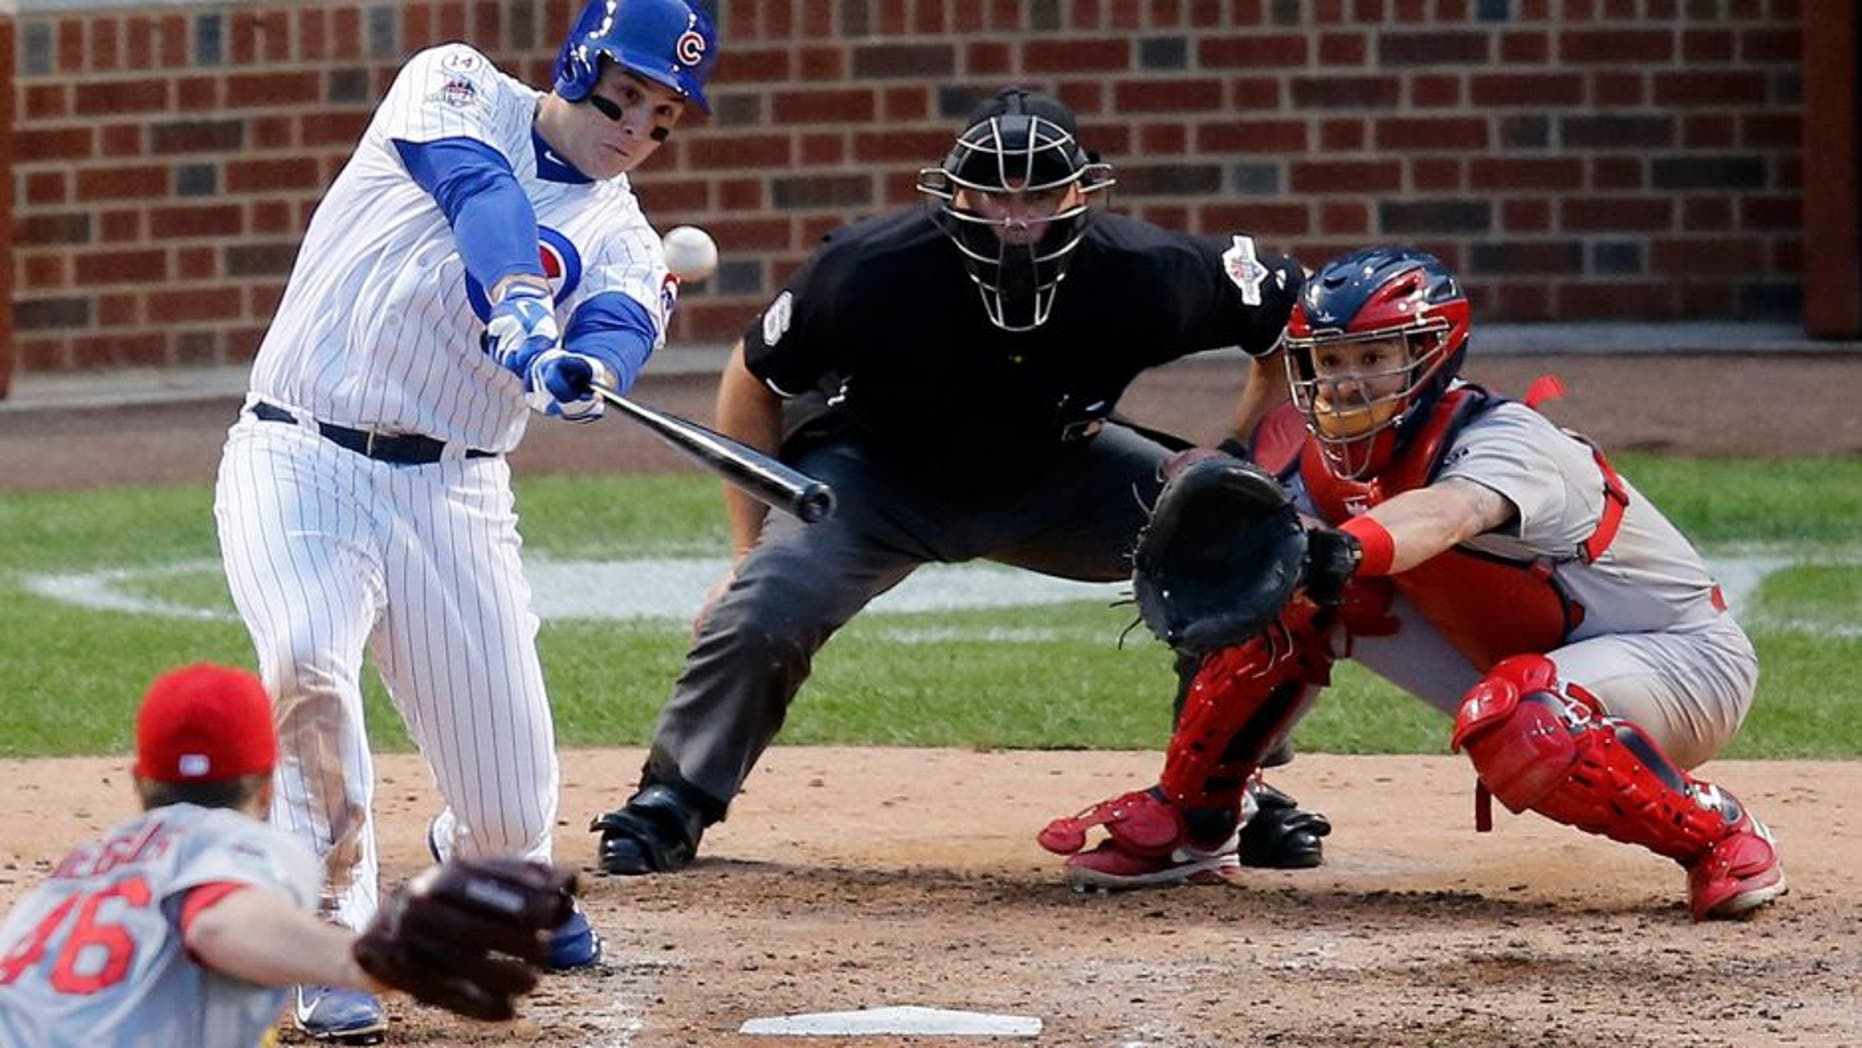 Chicago Cubs' Anthony Rizzo (44) hits a home run against the St. Louis Cardinals during the sixth inning of Game 4 in baseball's National League Division Series, Tuesday, Oct. 13, 2015, in Chicago. (AP Photo/Charles Rex Arbogast)